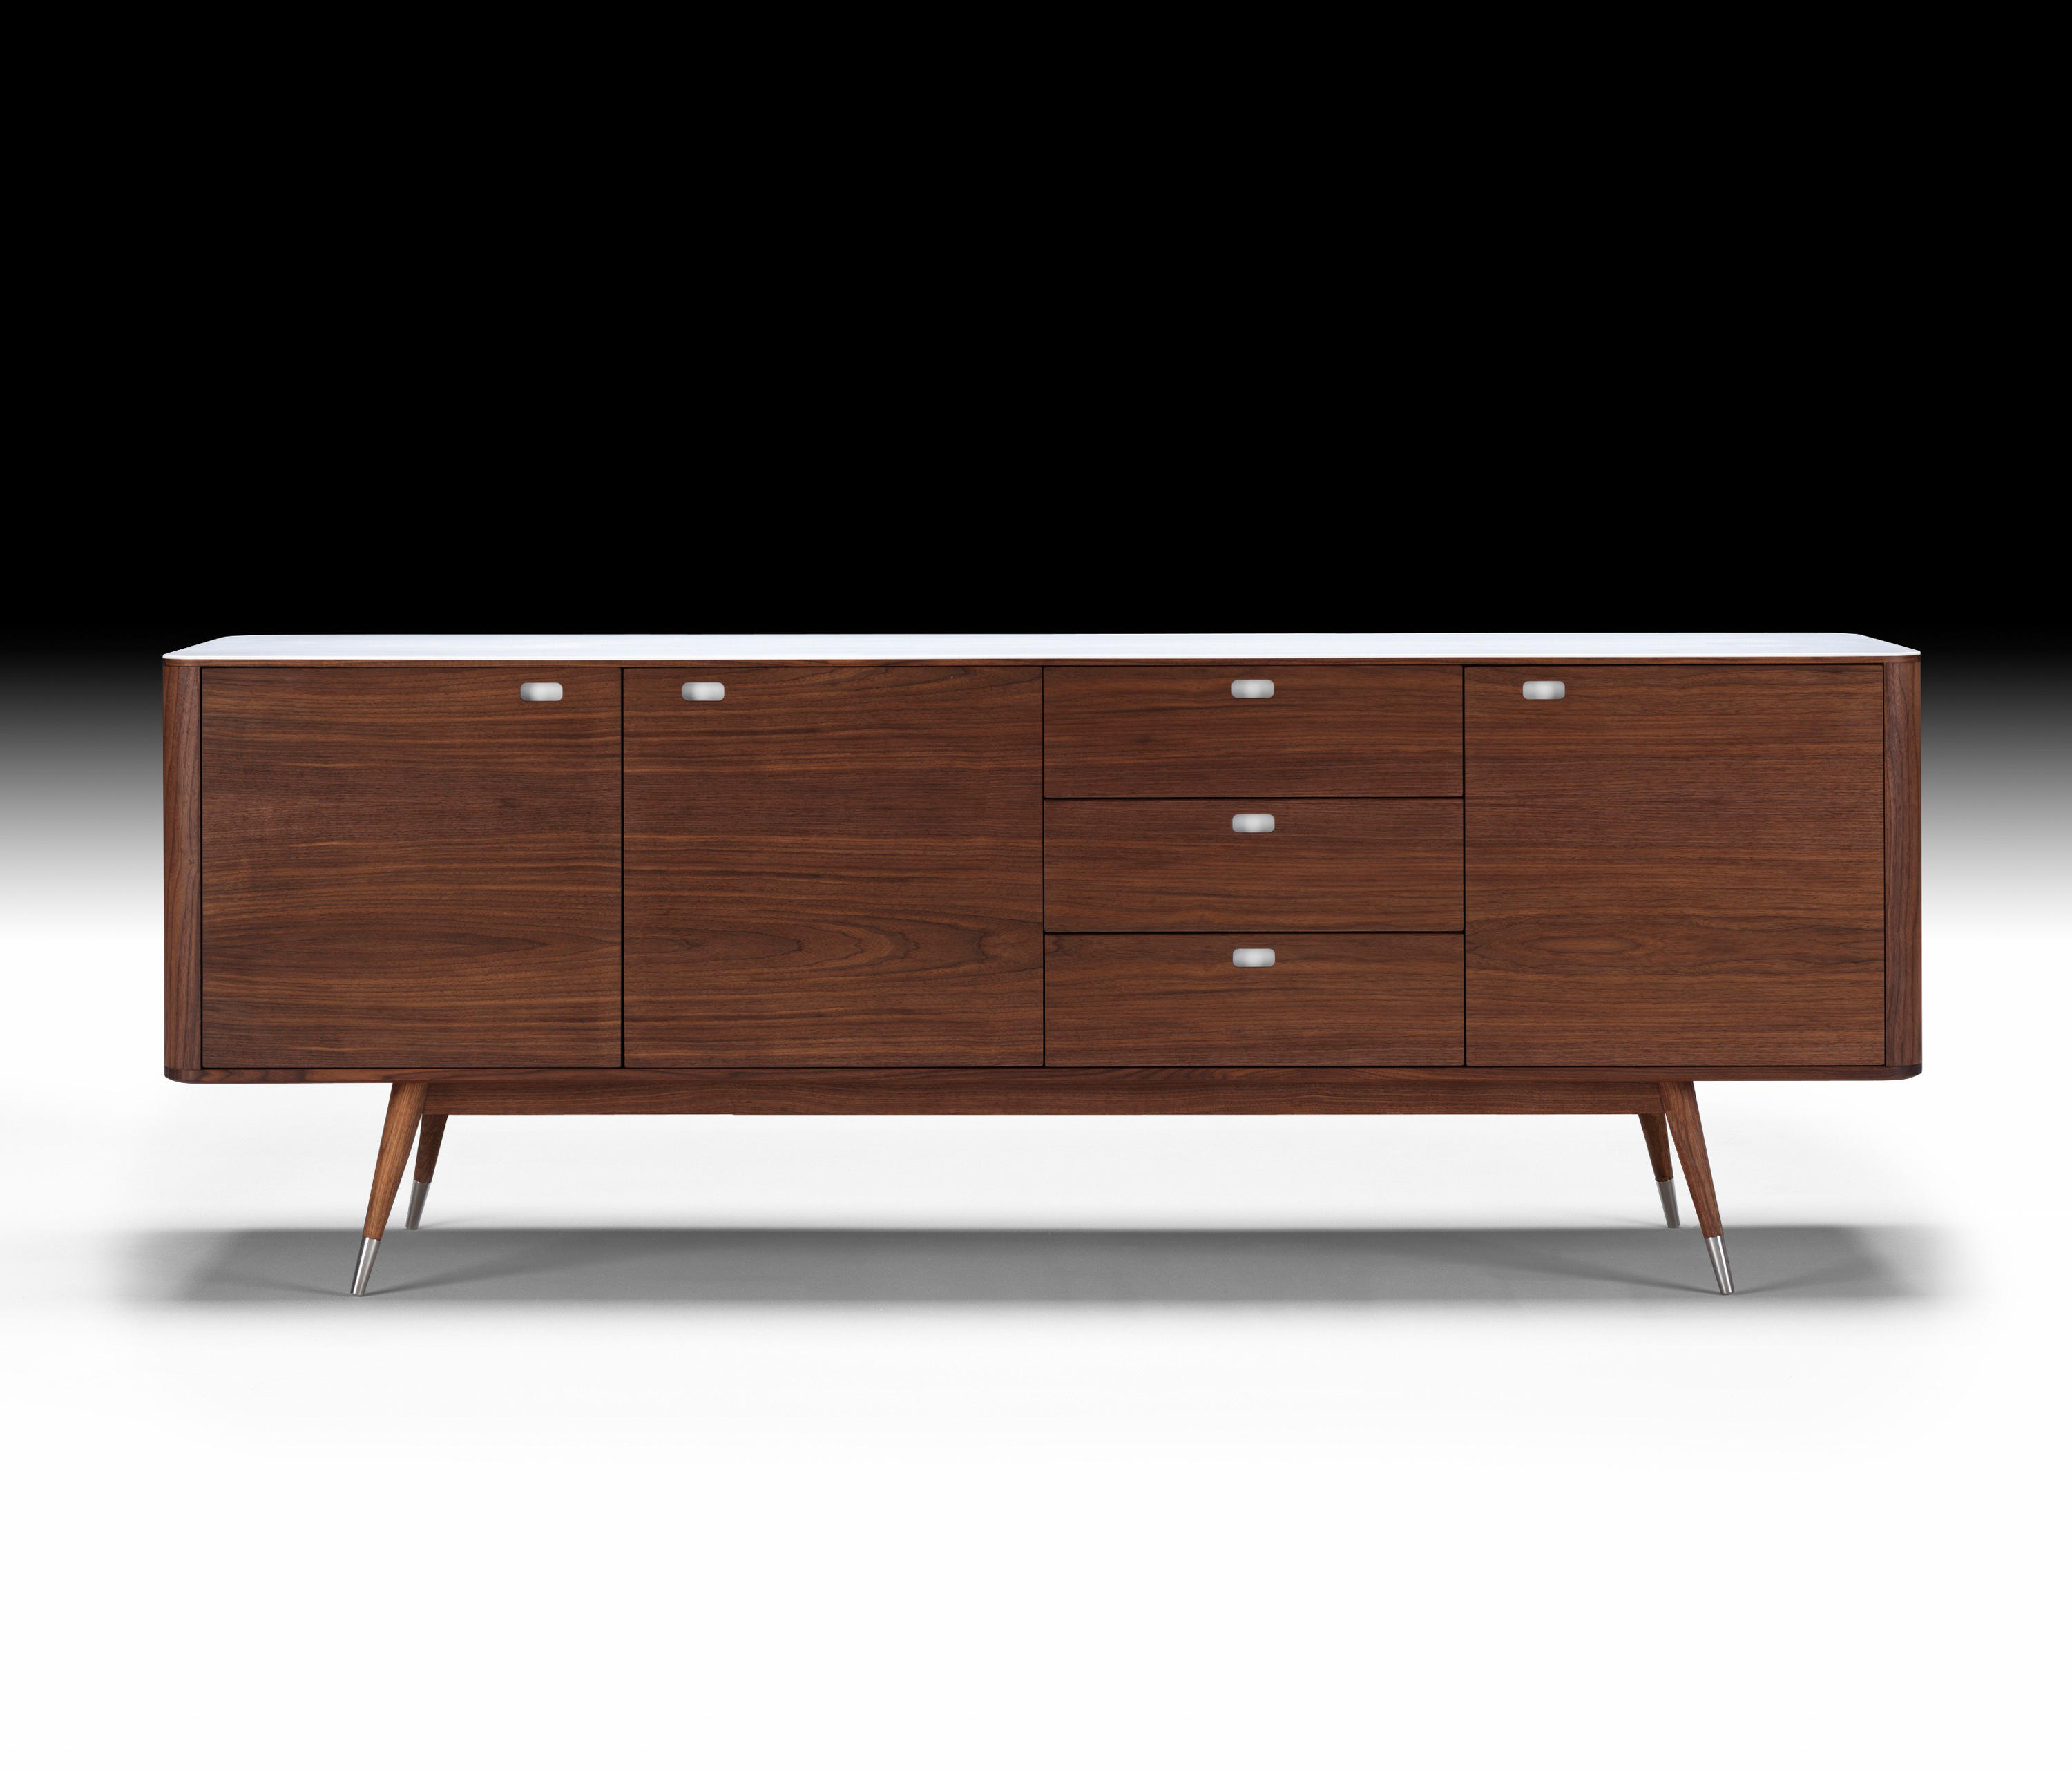 AK 2660 ANRICHTE Sideboards Kommoden von Naver Collection Architonic